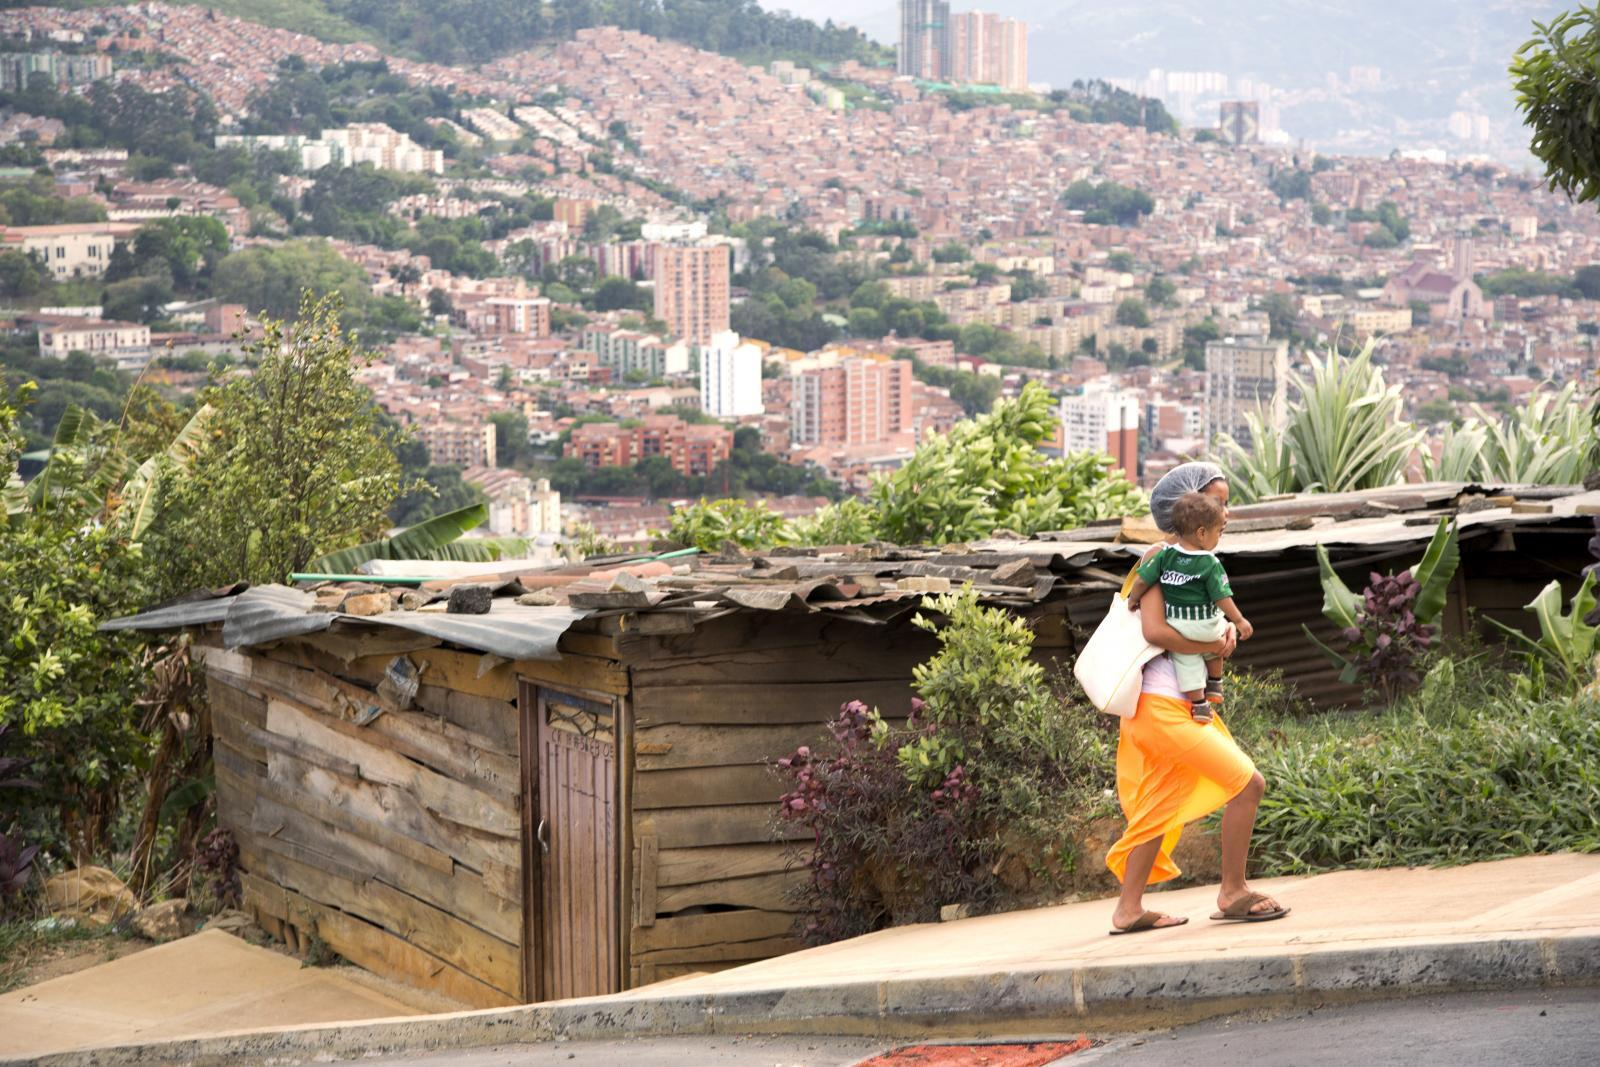 People are crowding into cities at record rates; many end up in poorer neighbourhoods with limited services and infrastructure. Electricity may be sporadic and water quality poor. Easing disparities requires specific actions to reach women, including investment in the public transport systems that many depend on. In this neighbourhood in Medellín, Colombia, most residents come from the countryside, having been displaced by conflict. Some services, like a cable car, have